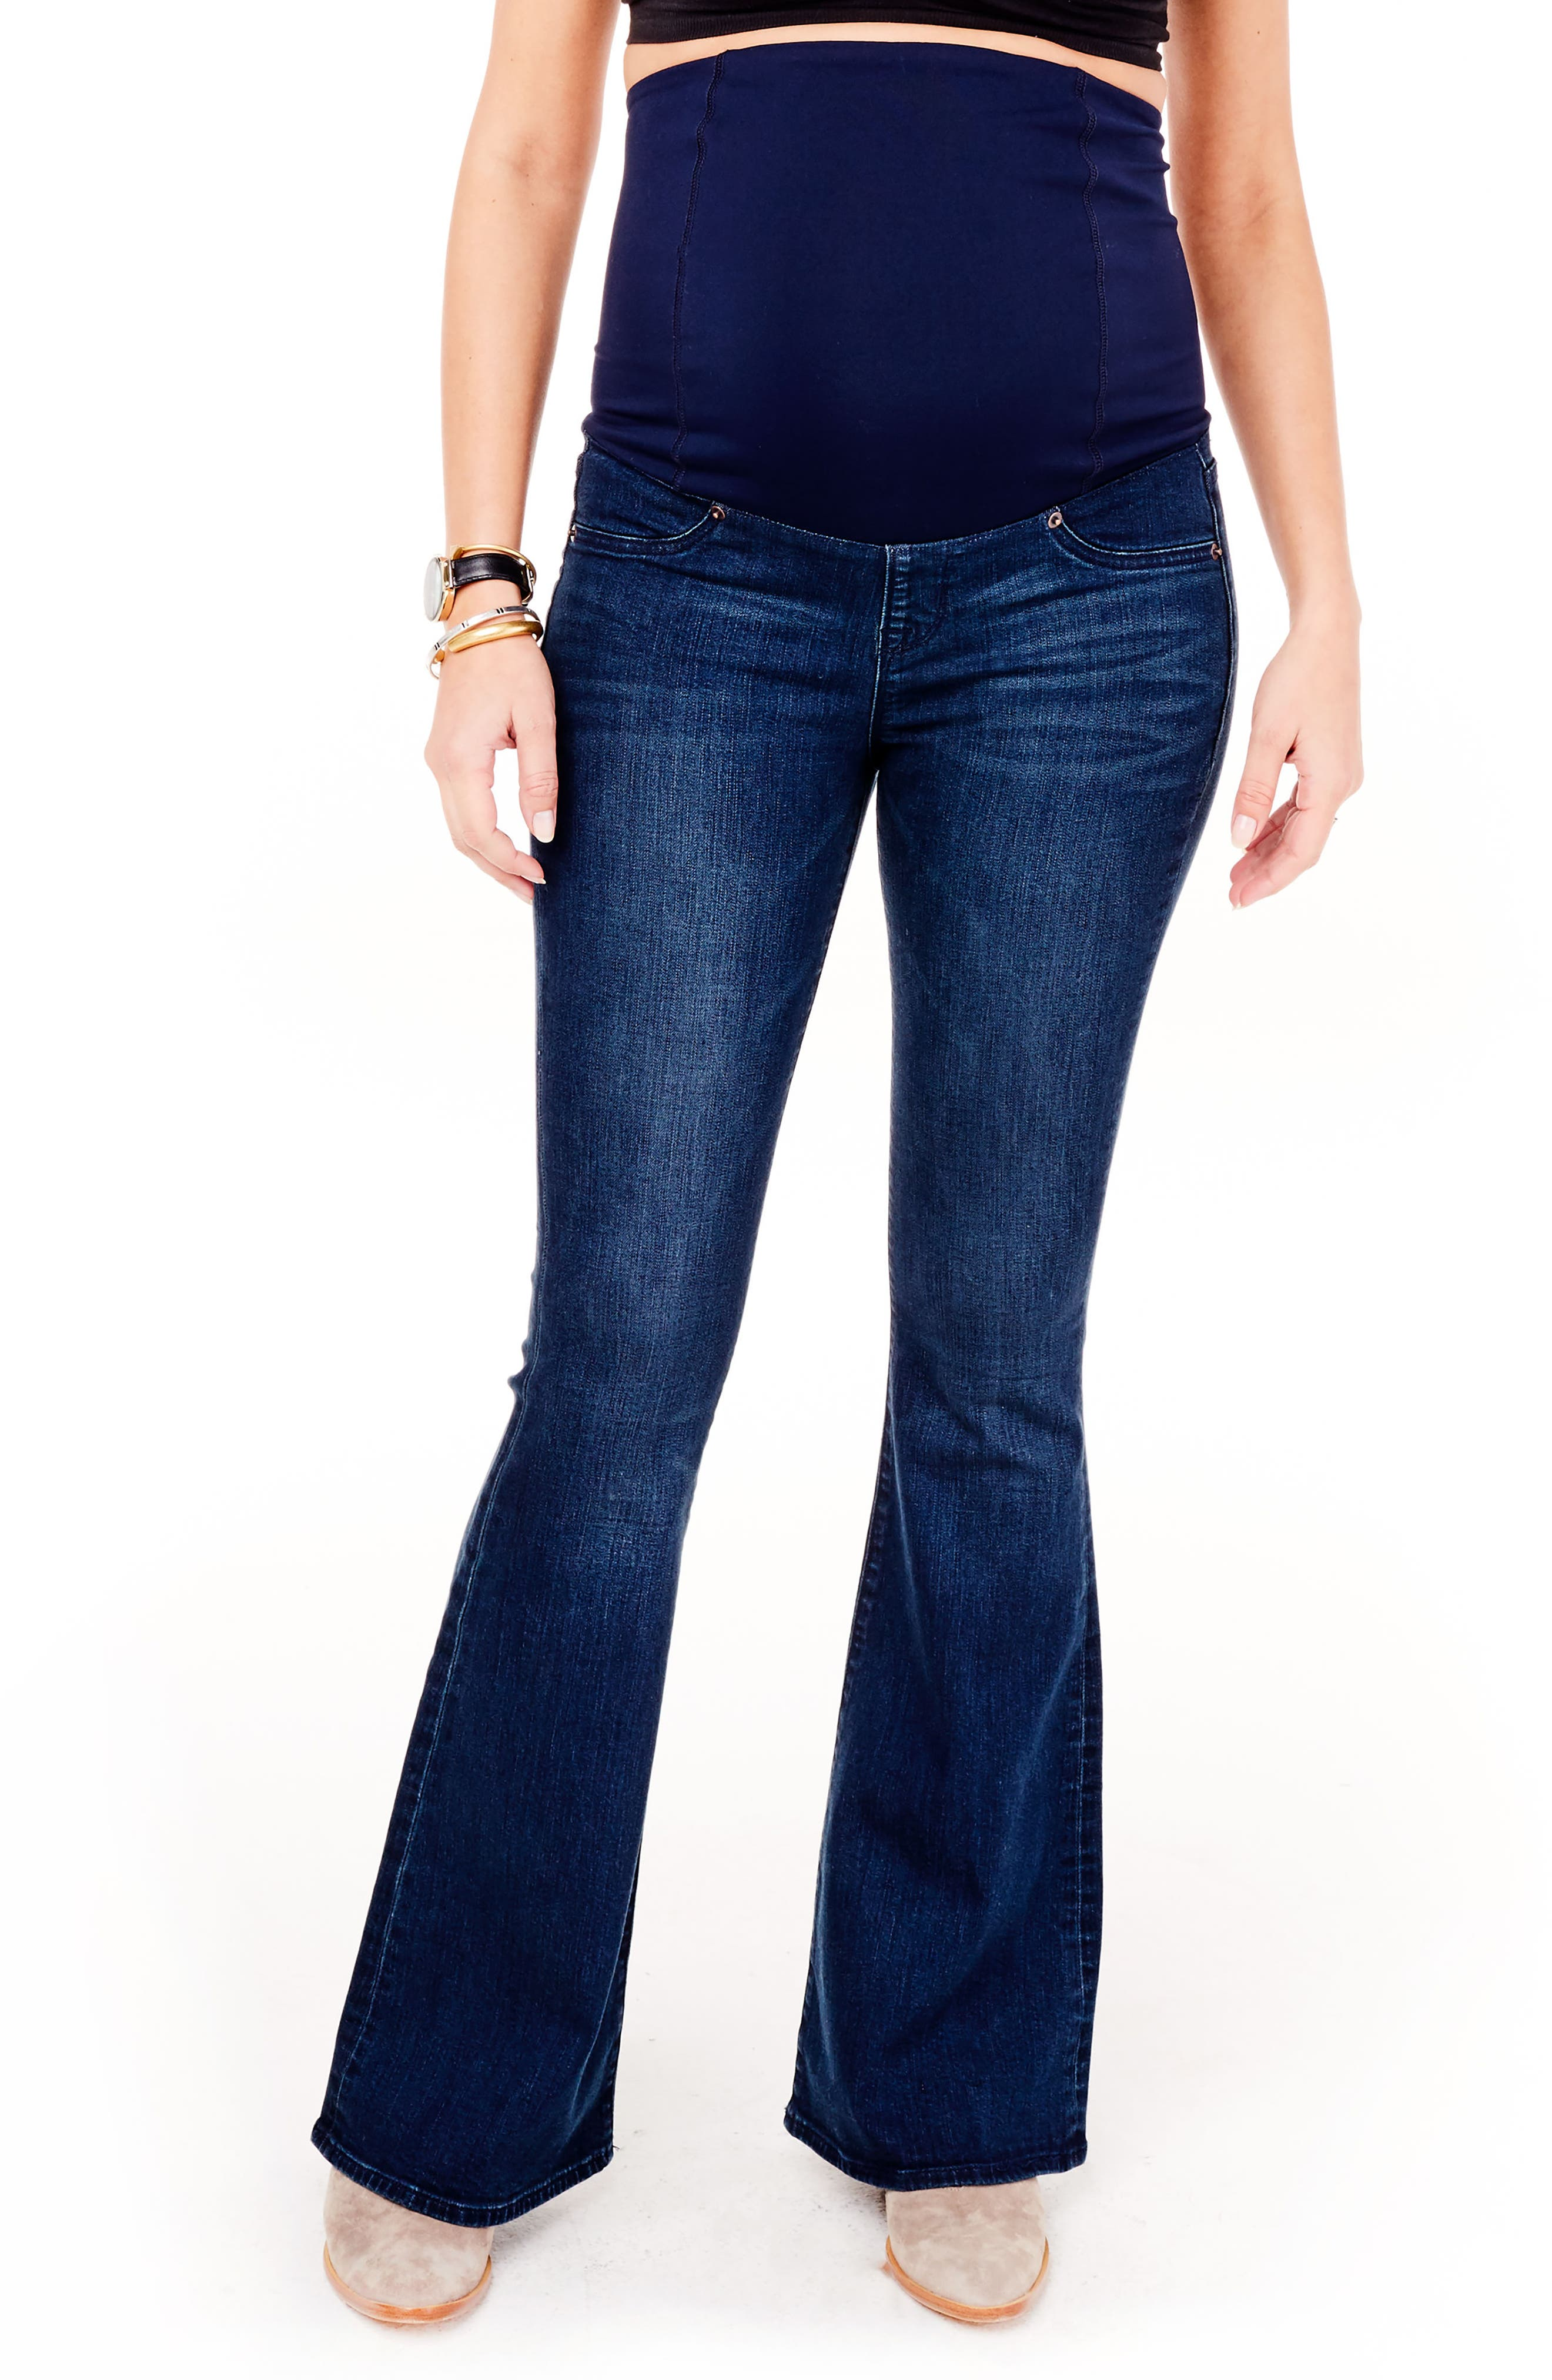 Main Image - Ingrid & Isabel® Gracie Flare Maternity Jeans (True Blue)